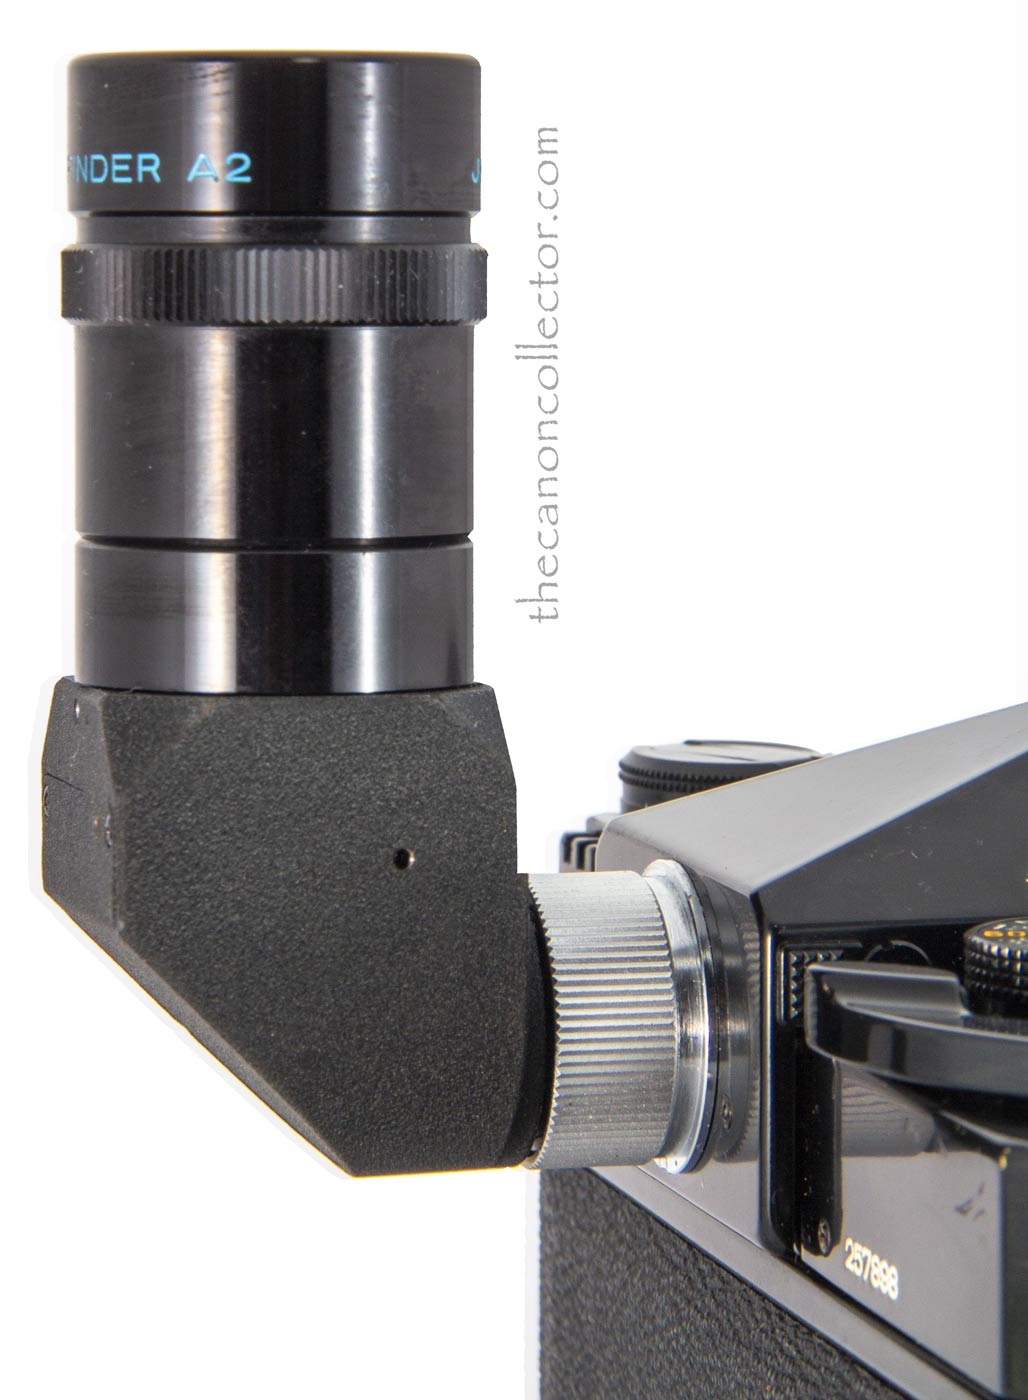 Canon Angle Finder A2